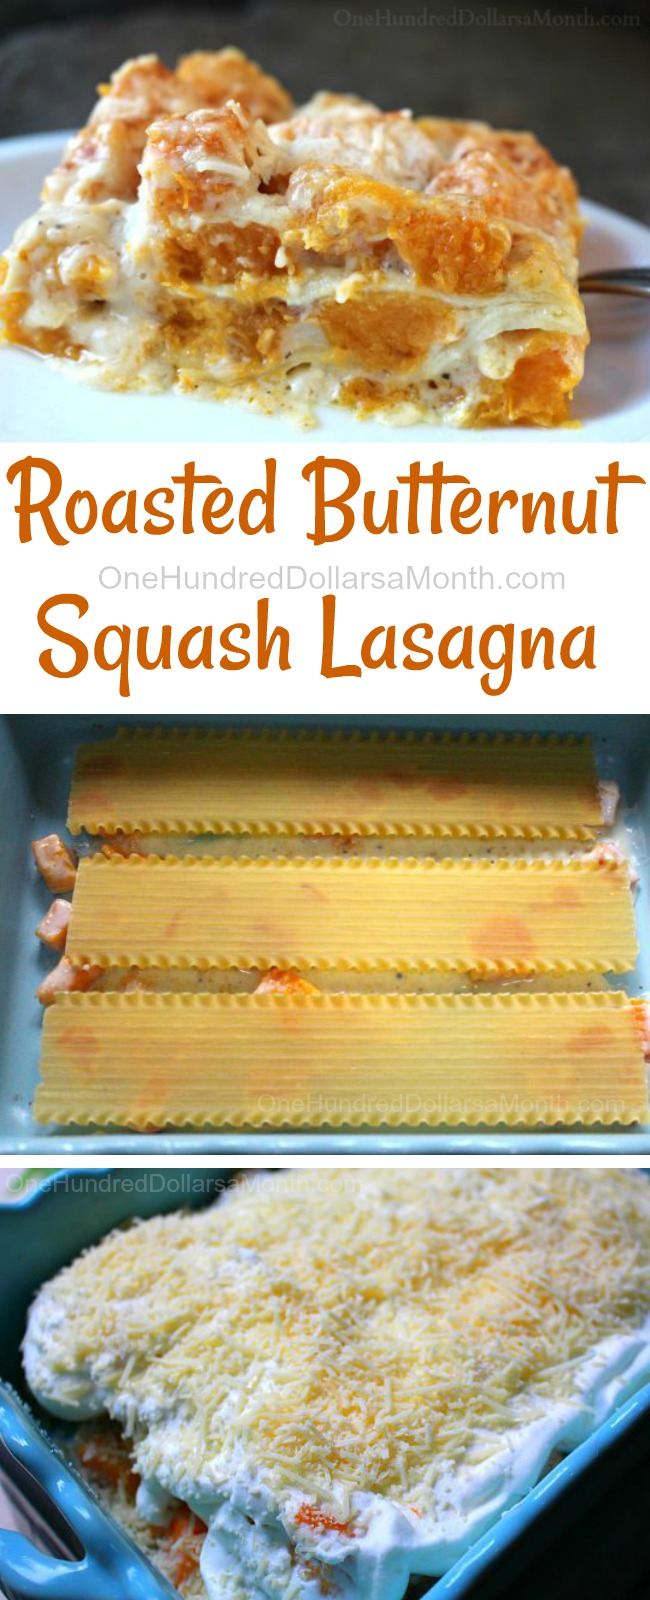 Roasted Butternut Squash Lasagna - One Hundred Dollars a Month